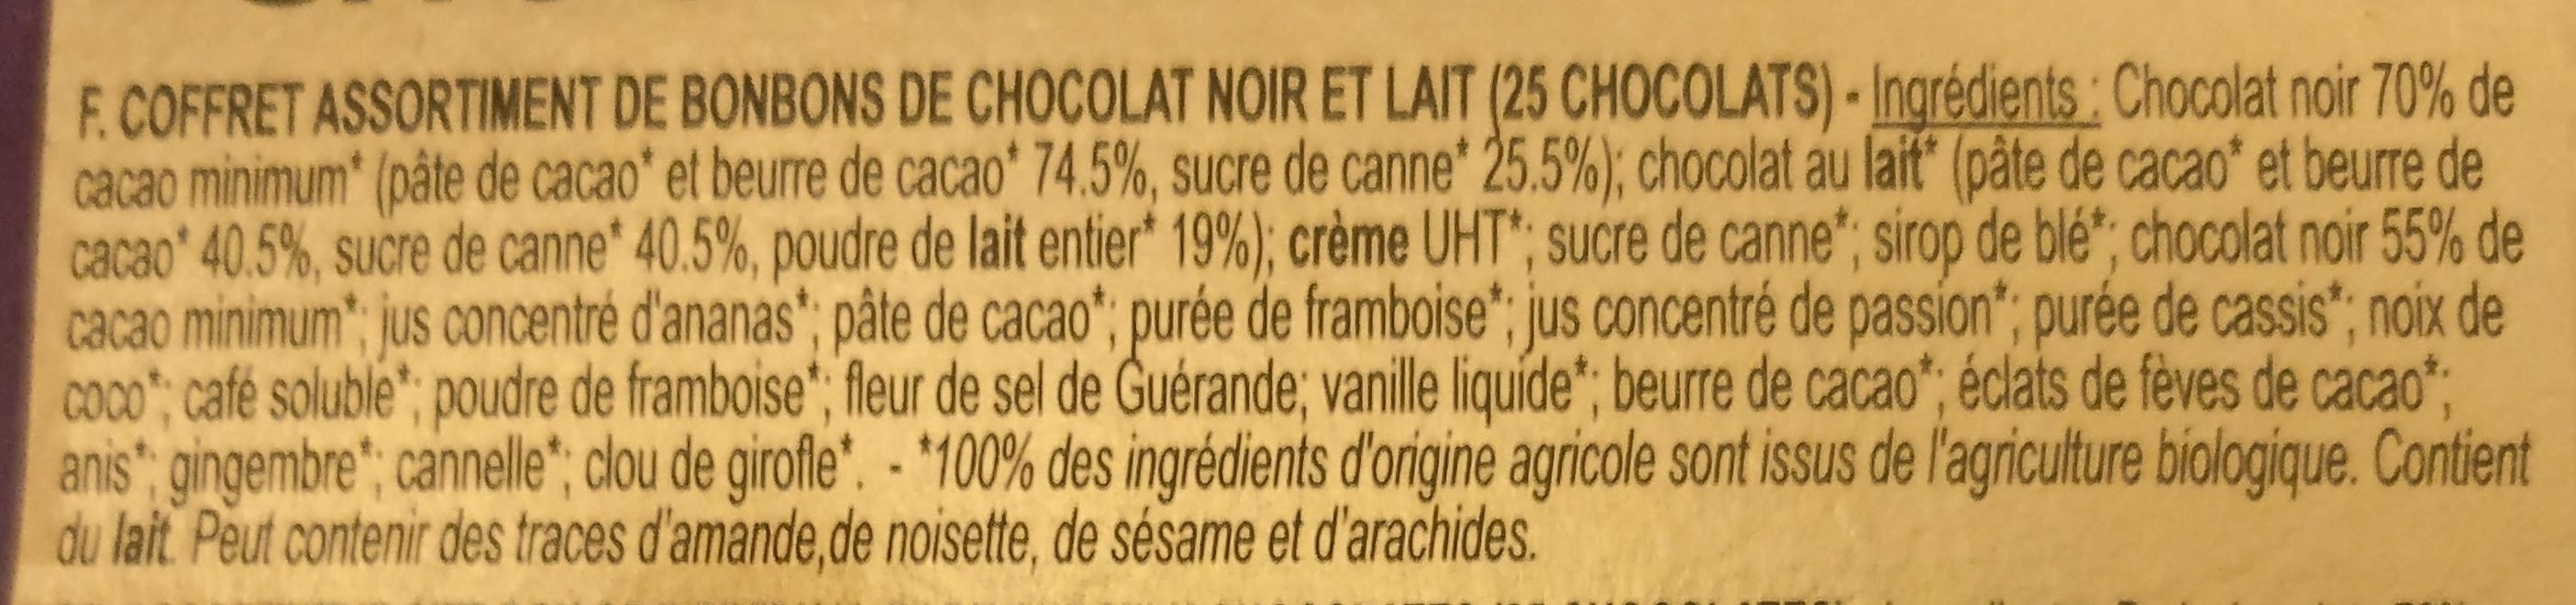 Assortiment chocolat noir et au lait - Ingredients